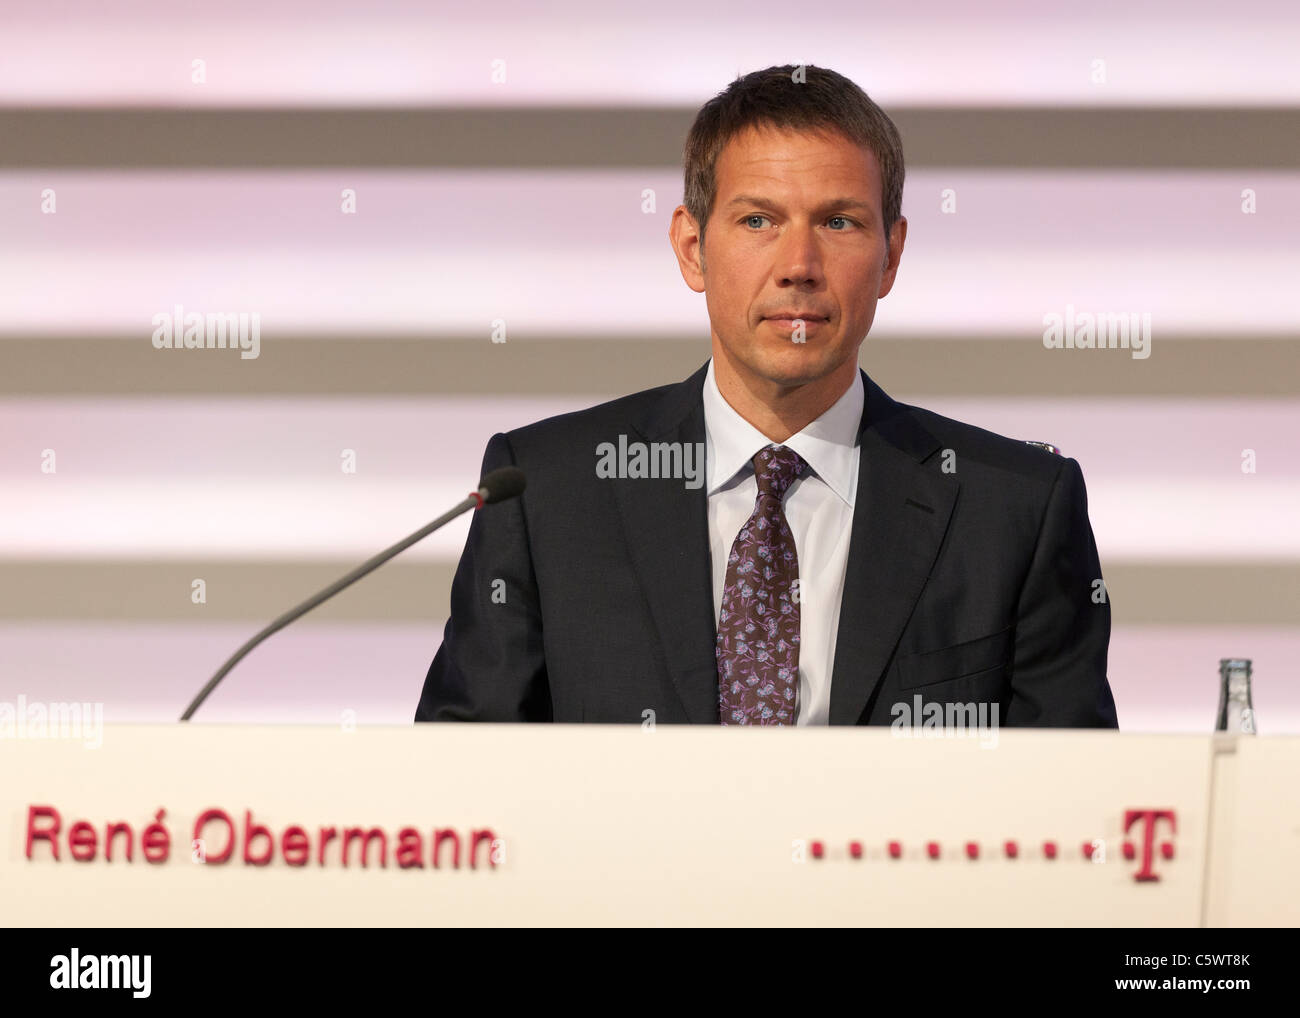 Rene Obermann, CEO Deutsche Telekom. Stock Photo